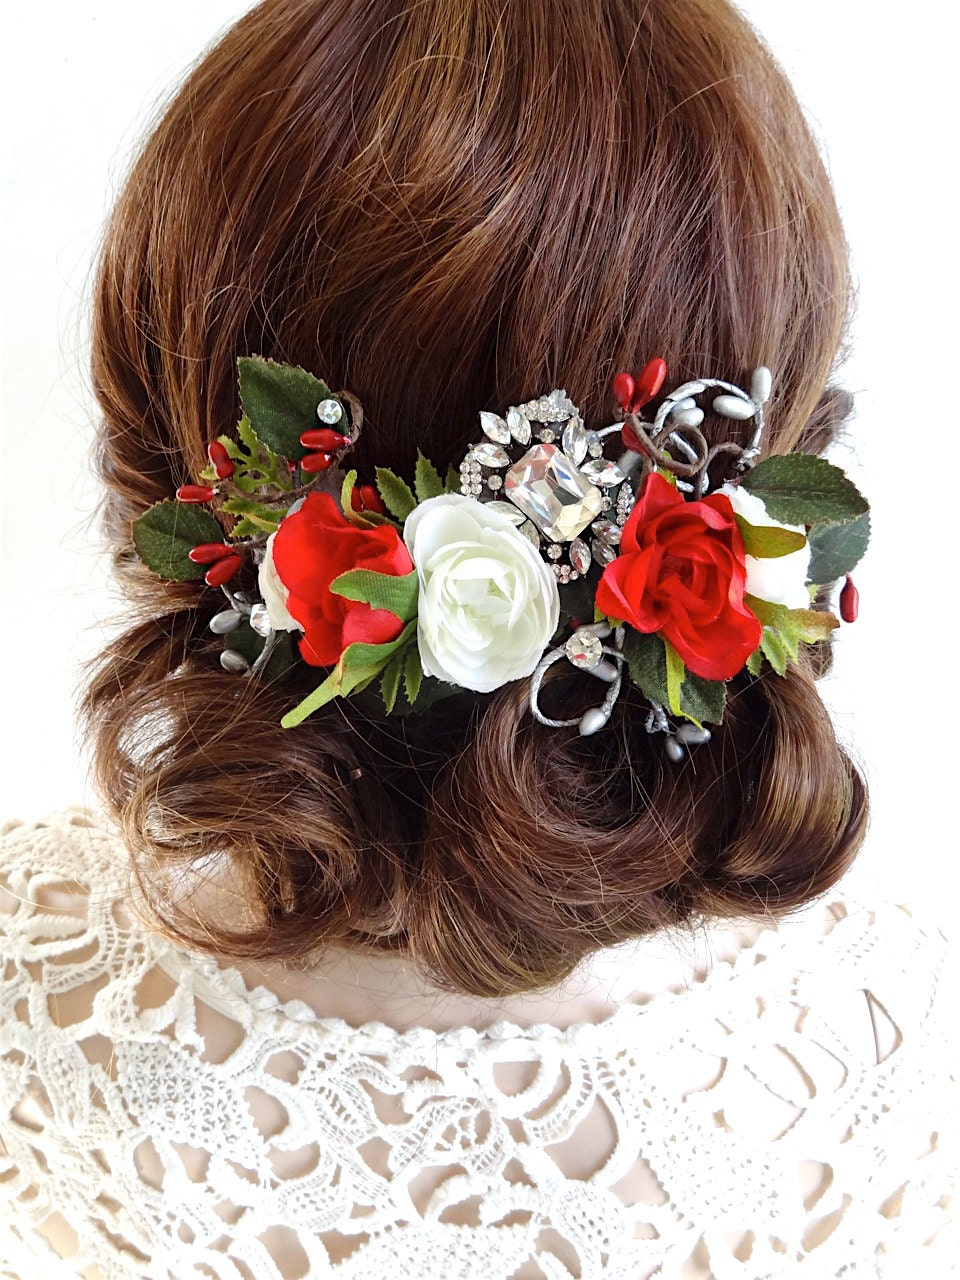 Christmas Hair Accessories, Wholesale Various High Quality Christmas Hair Accessories Products from Global Christmas Hair Accessories Suppliers and Christmas Hair Accessories Factory,Importer,Exporter at makeshop-zpnxx1b0.cf